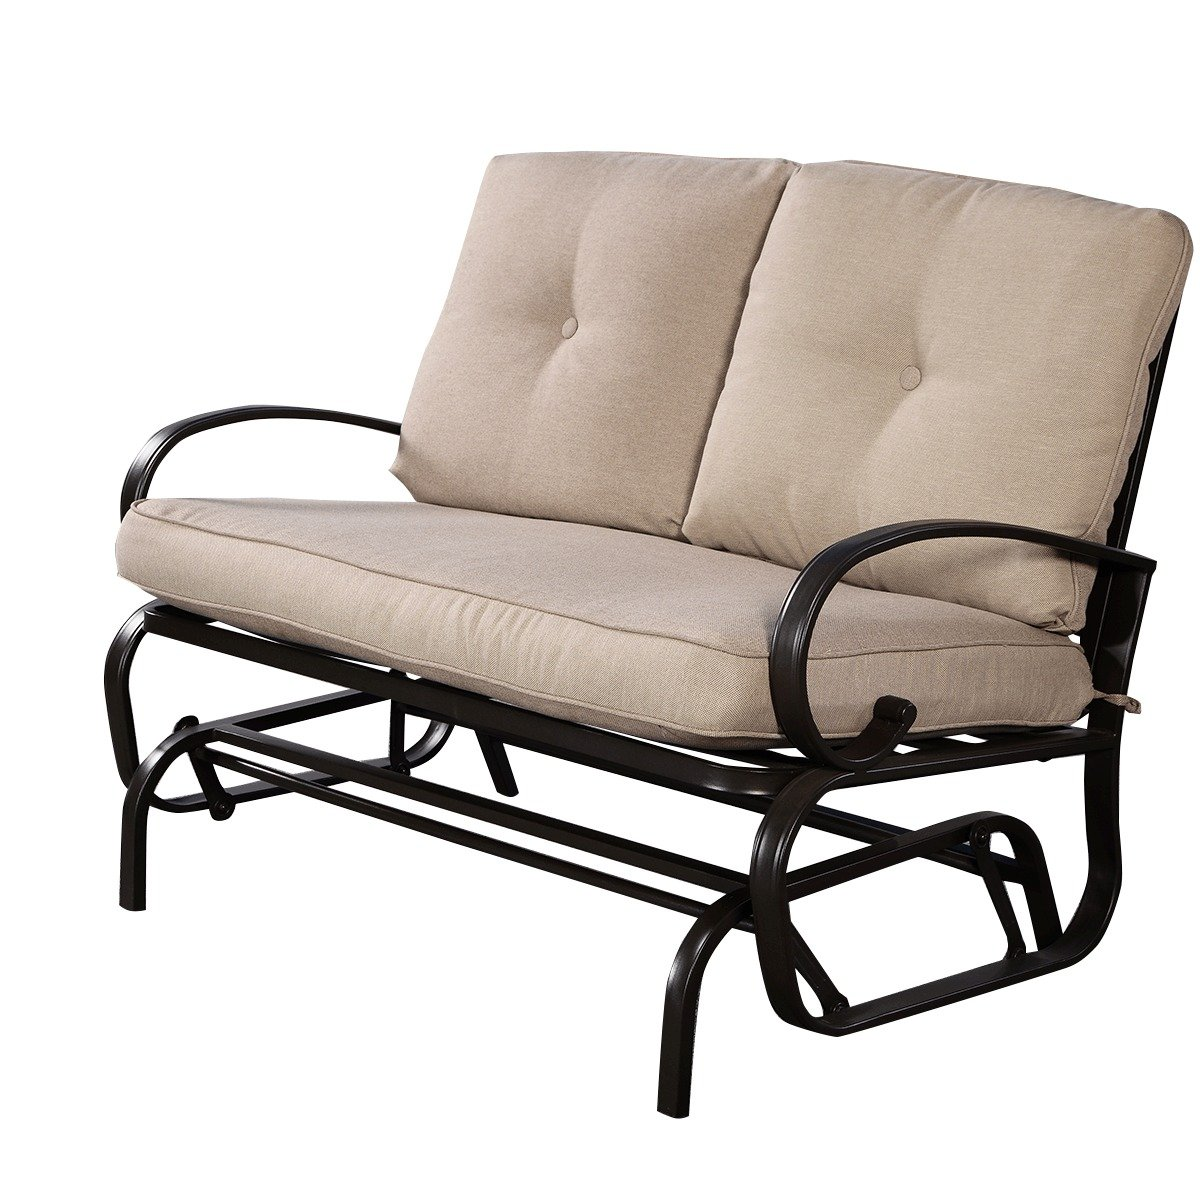 seat swing loveseat w patio porch chair canopy living hammock person outsunny outdoor